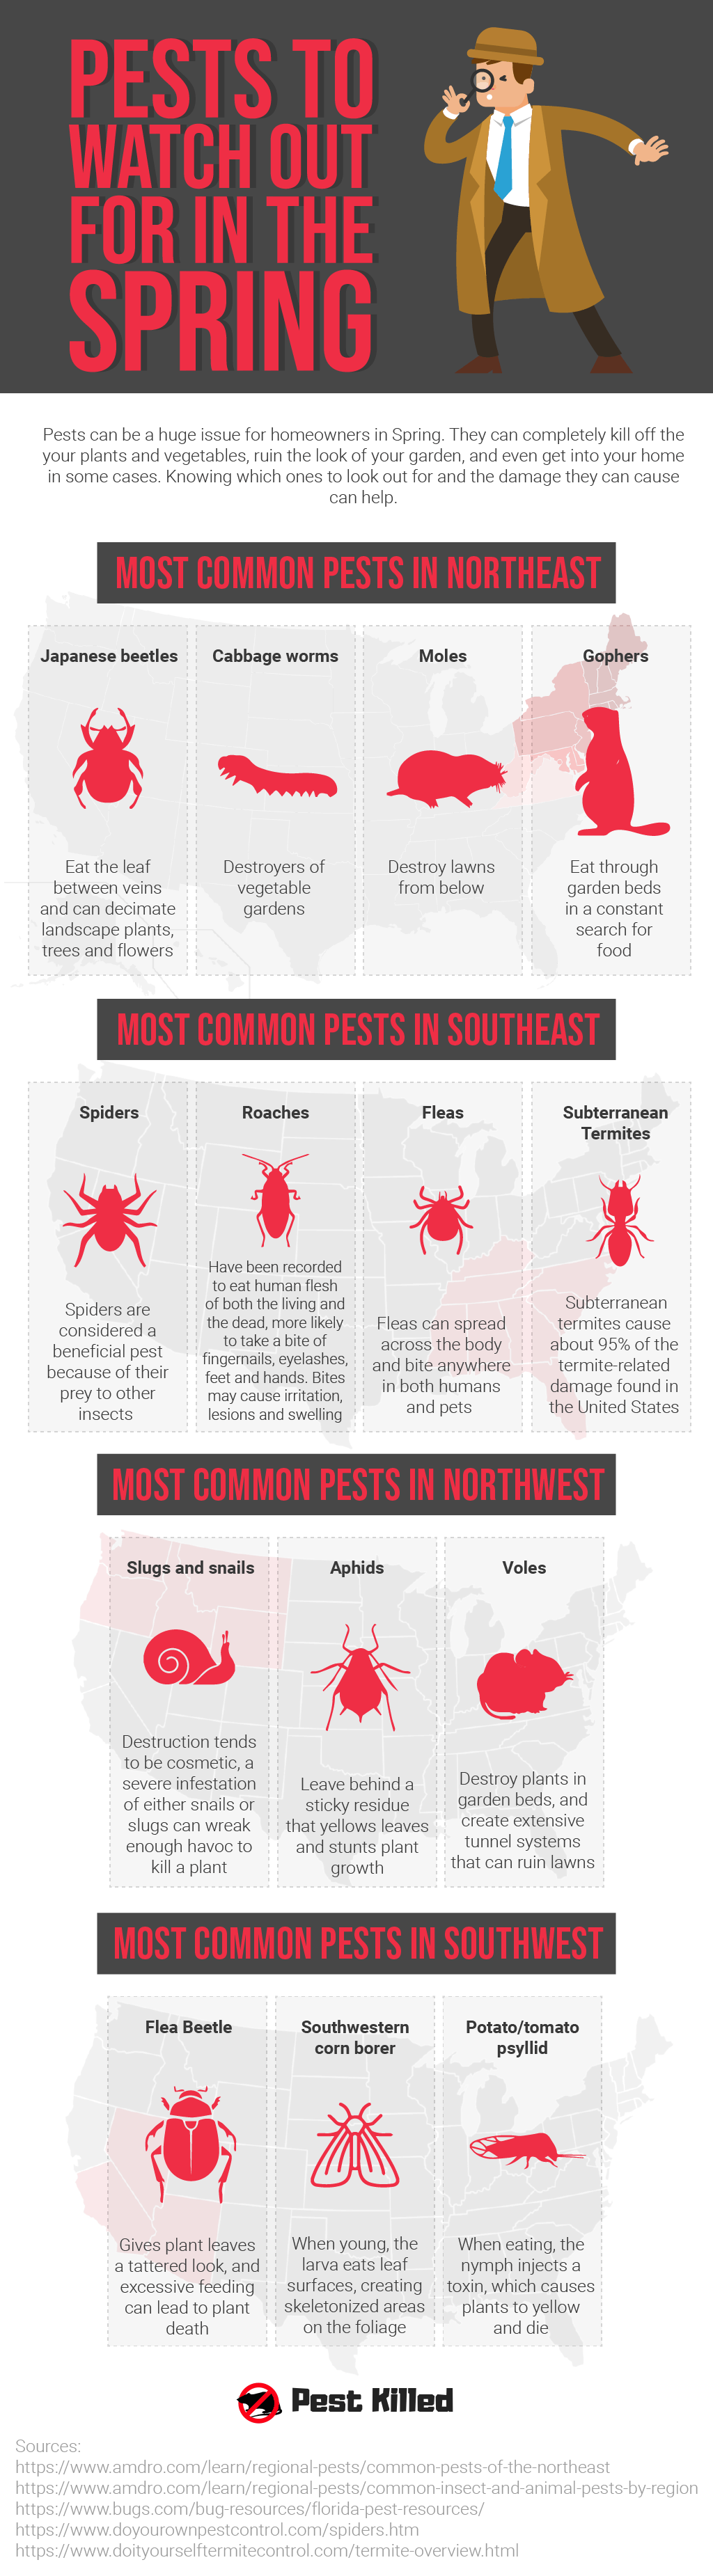 Pests to Watch out for in Spring